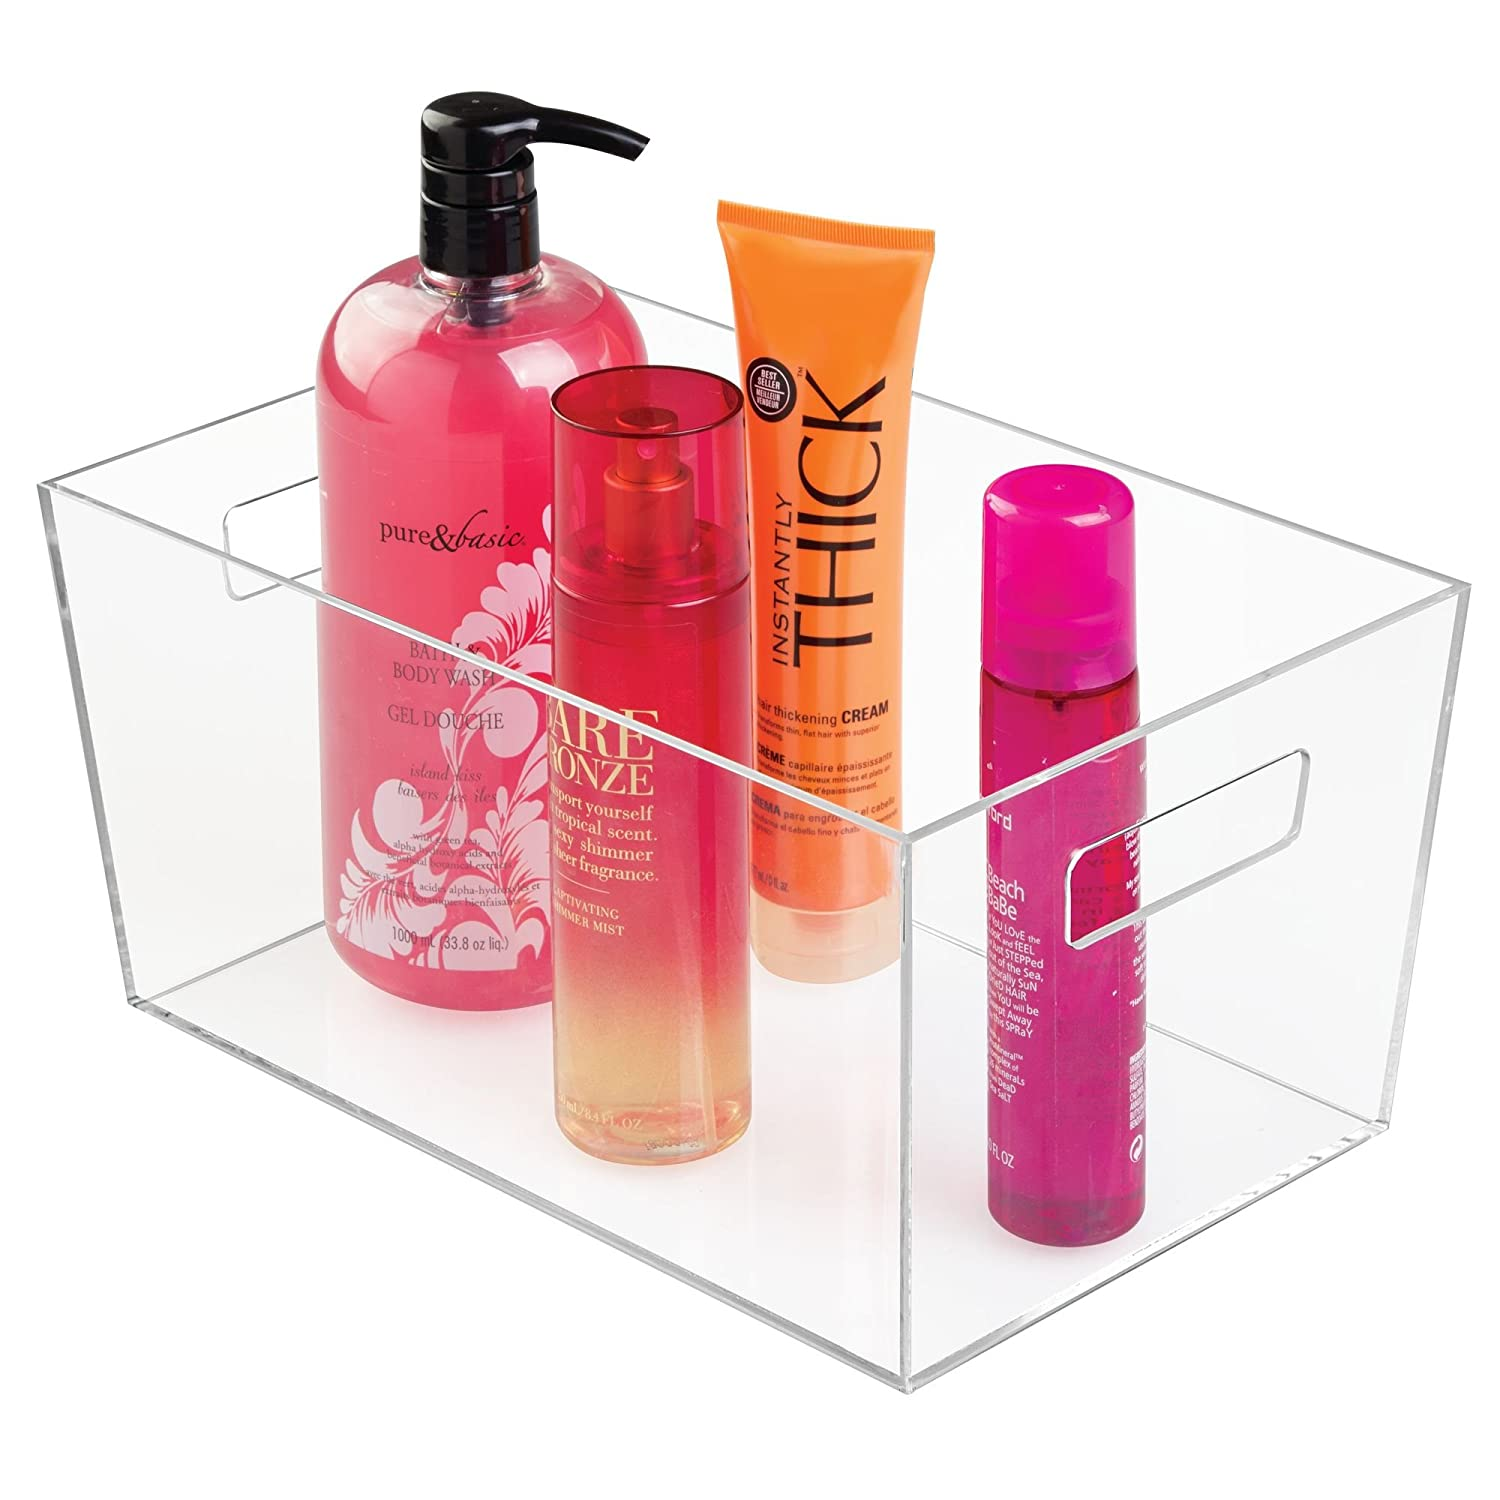 mDesign Bathroom Modern Plastic Storage Organizer Bin Tote Basket with Handles for Organizing Hand Soaps, Body Wash, Shampoos, Conditioners, Hand Towels - Large, Clear MetroDecor